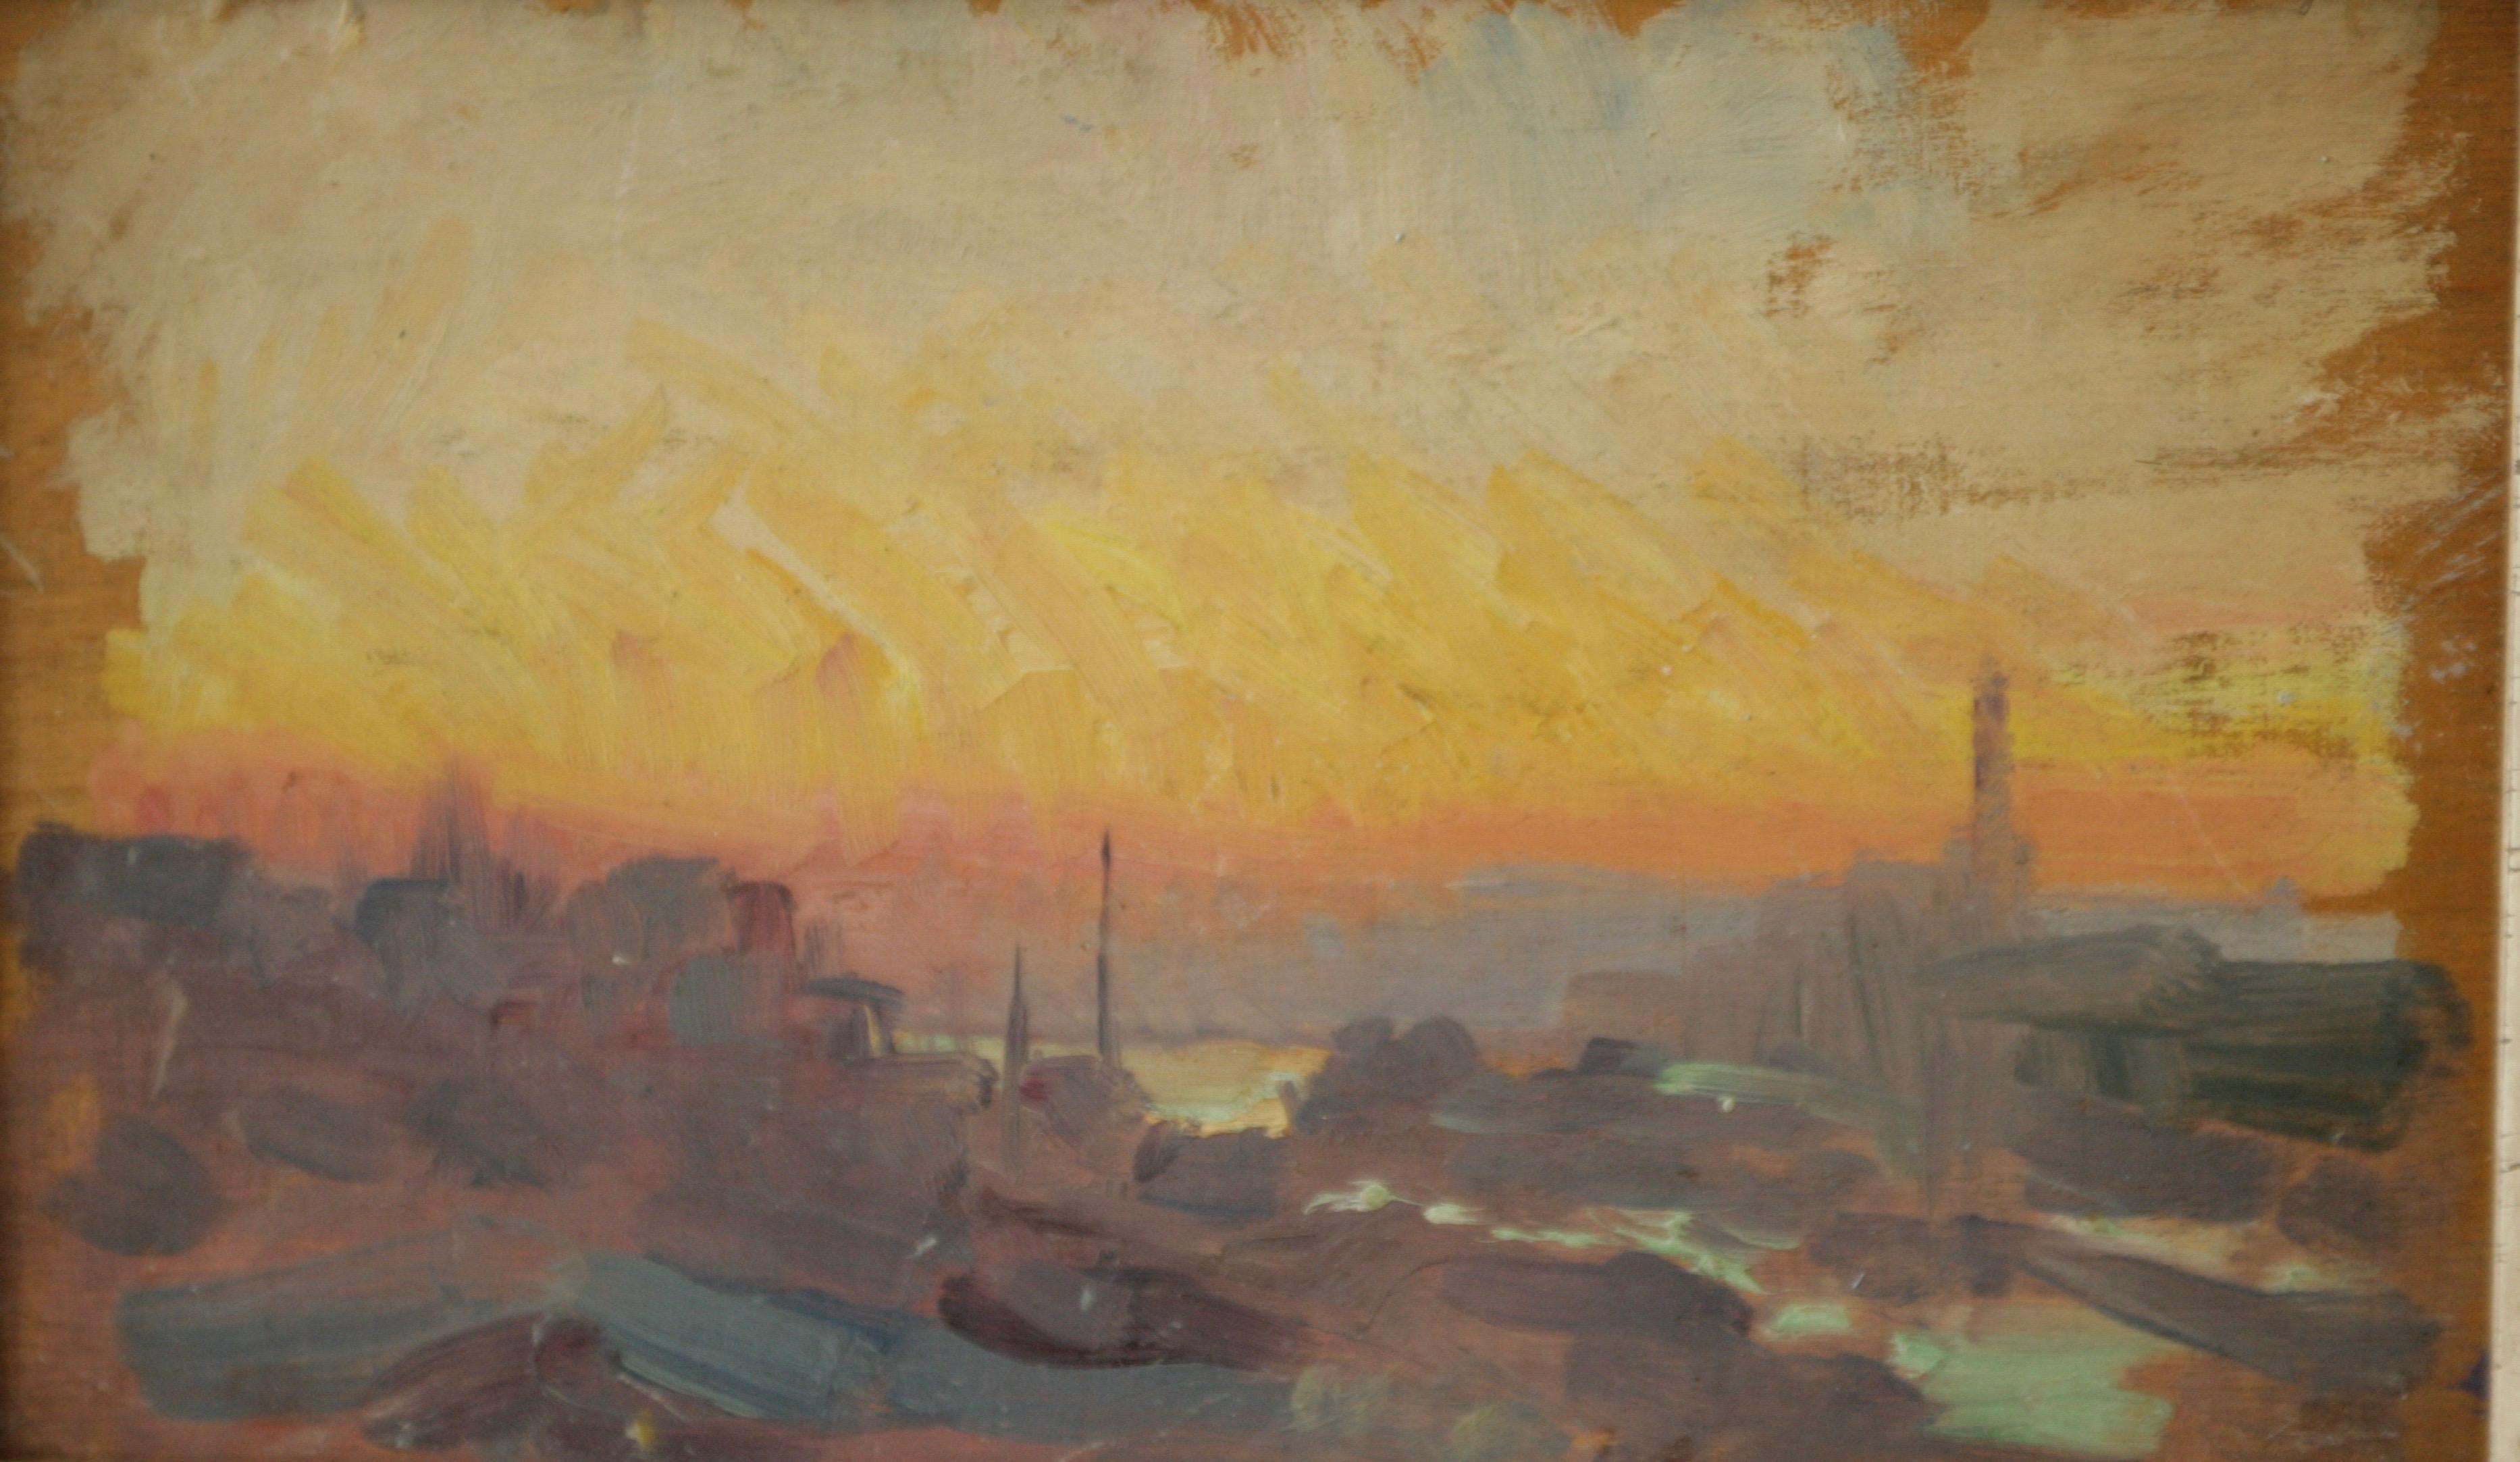 oil sketches that came directly from the artist studio ..JEAN FRANCK BAUDOIN